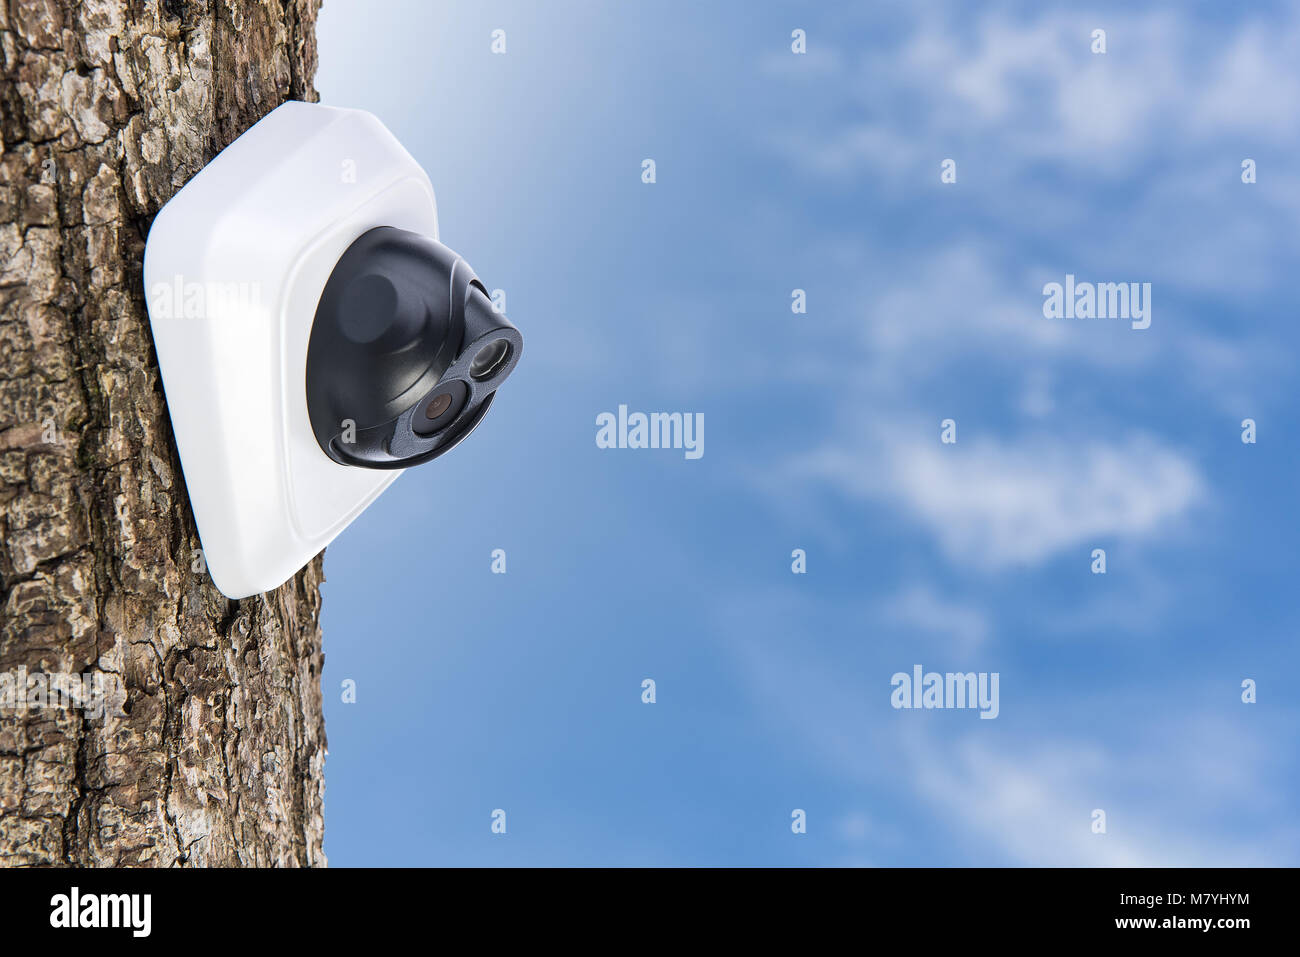 IP Camera on the oak tree trunk, beautiful sky background with copyspace. Concept - technology and security - Stock Image